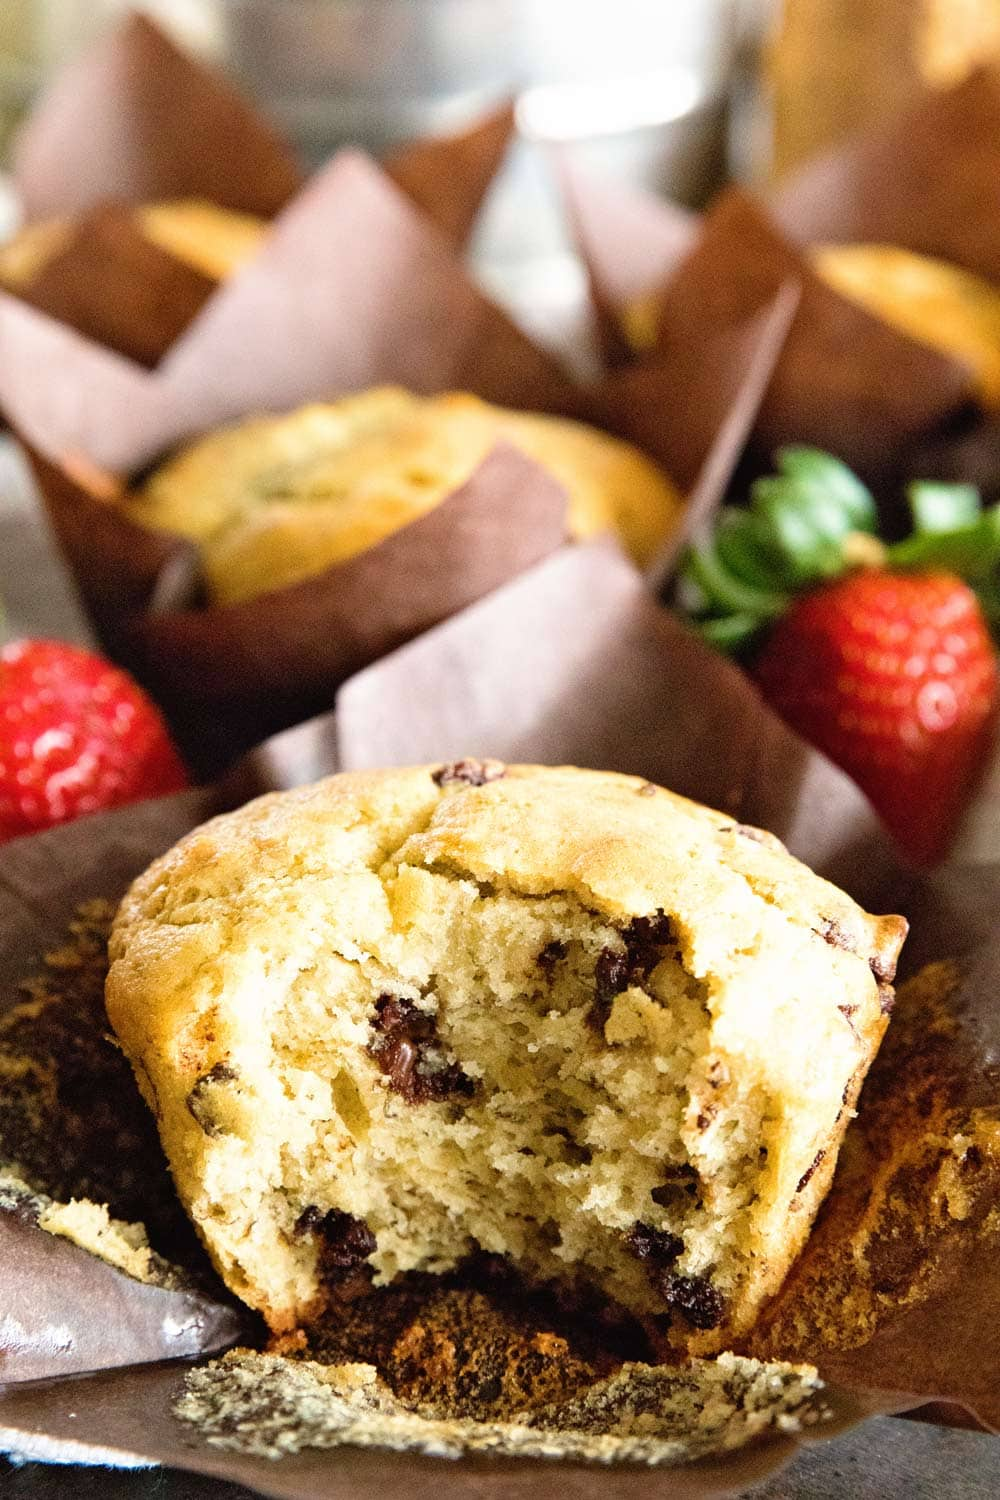 Tender, Moist Banana Muffins with Chocolate chips